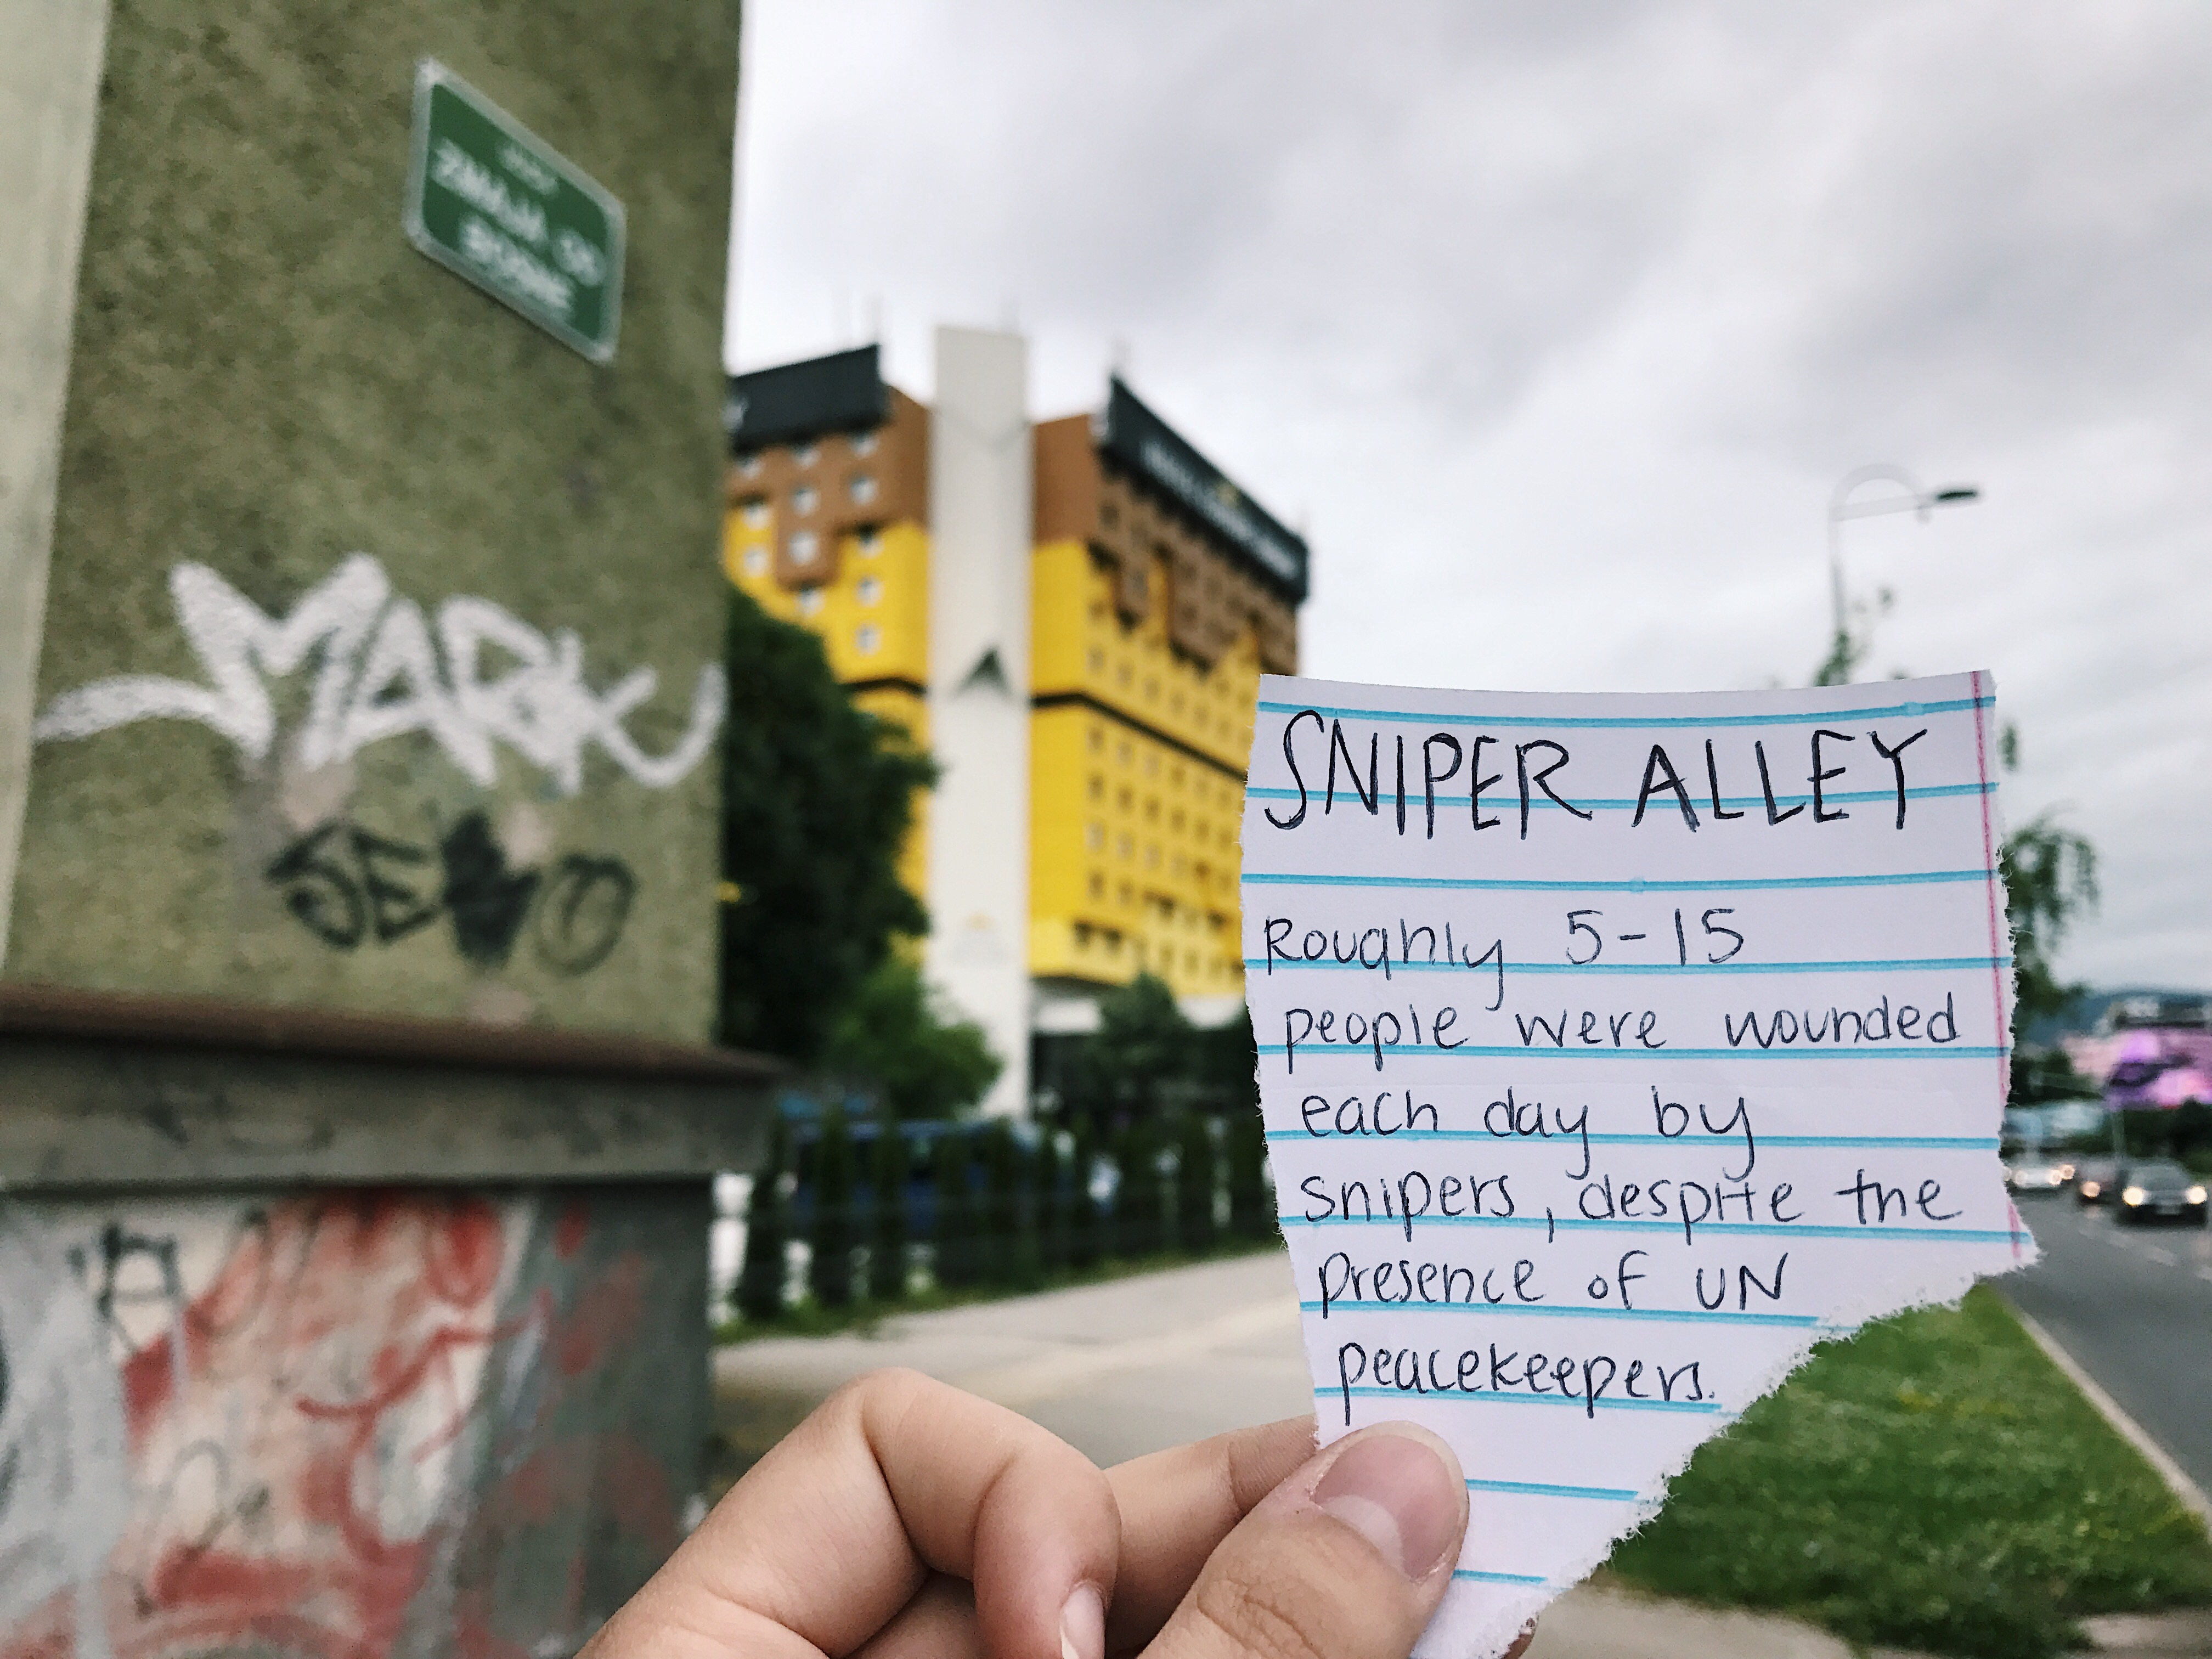 Scrap of paper in front of yellow high rise building which reads, Sniper Alley. Roughly 5-15 people were wounded each day by snipers, despite the presence of UN peacekeepers.